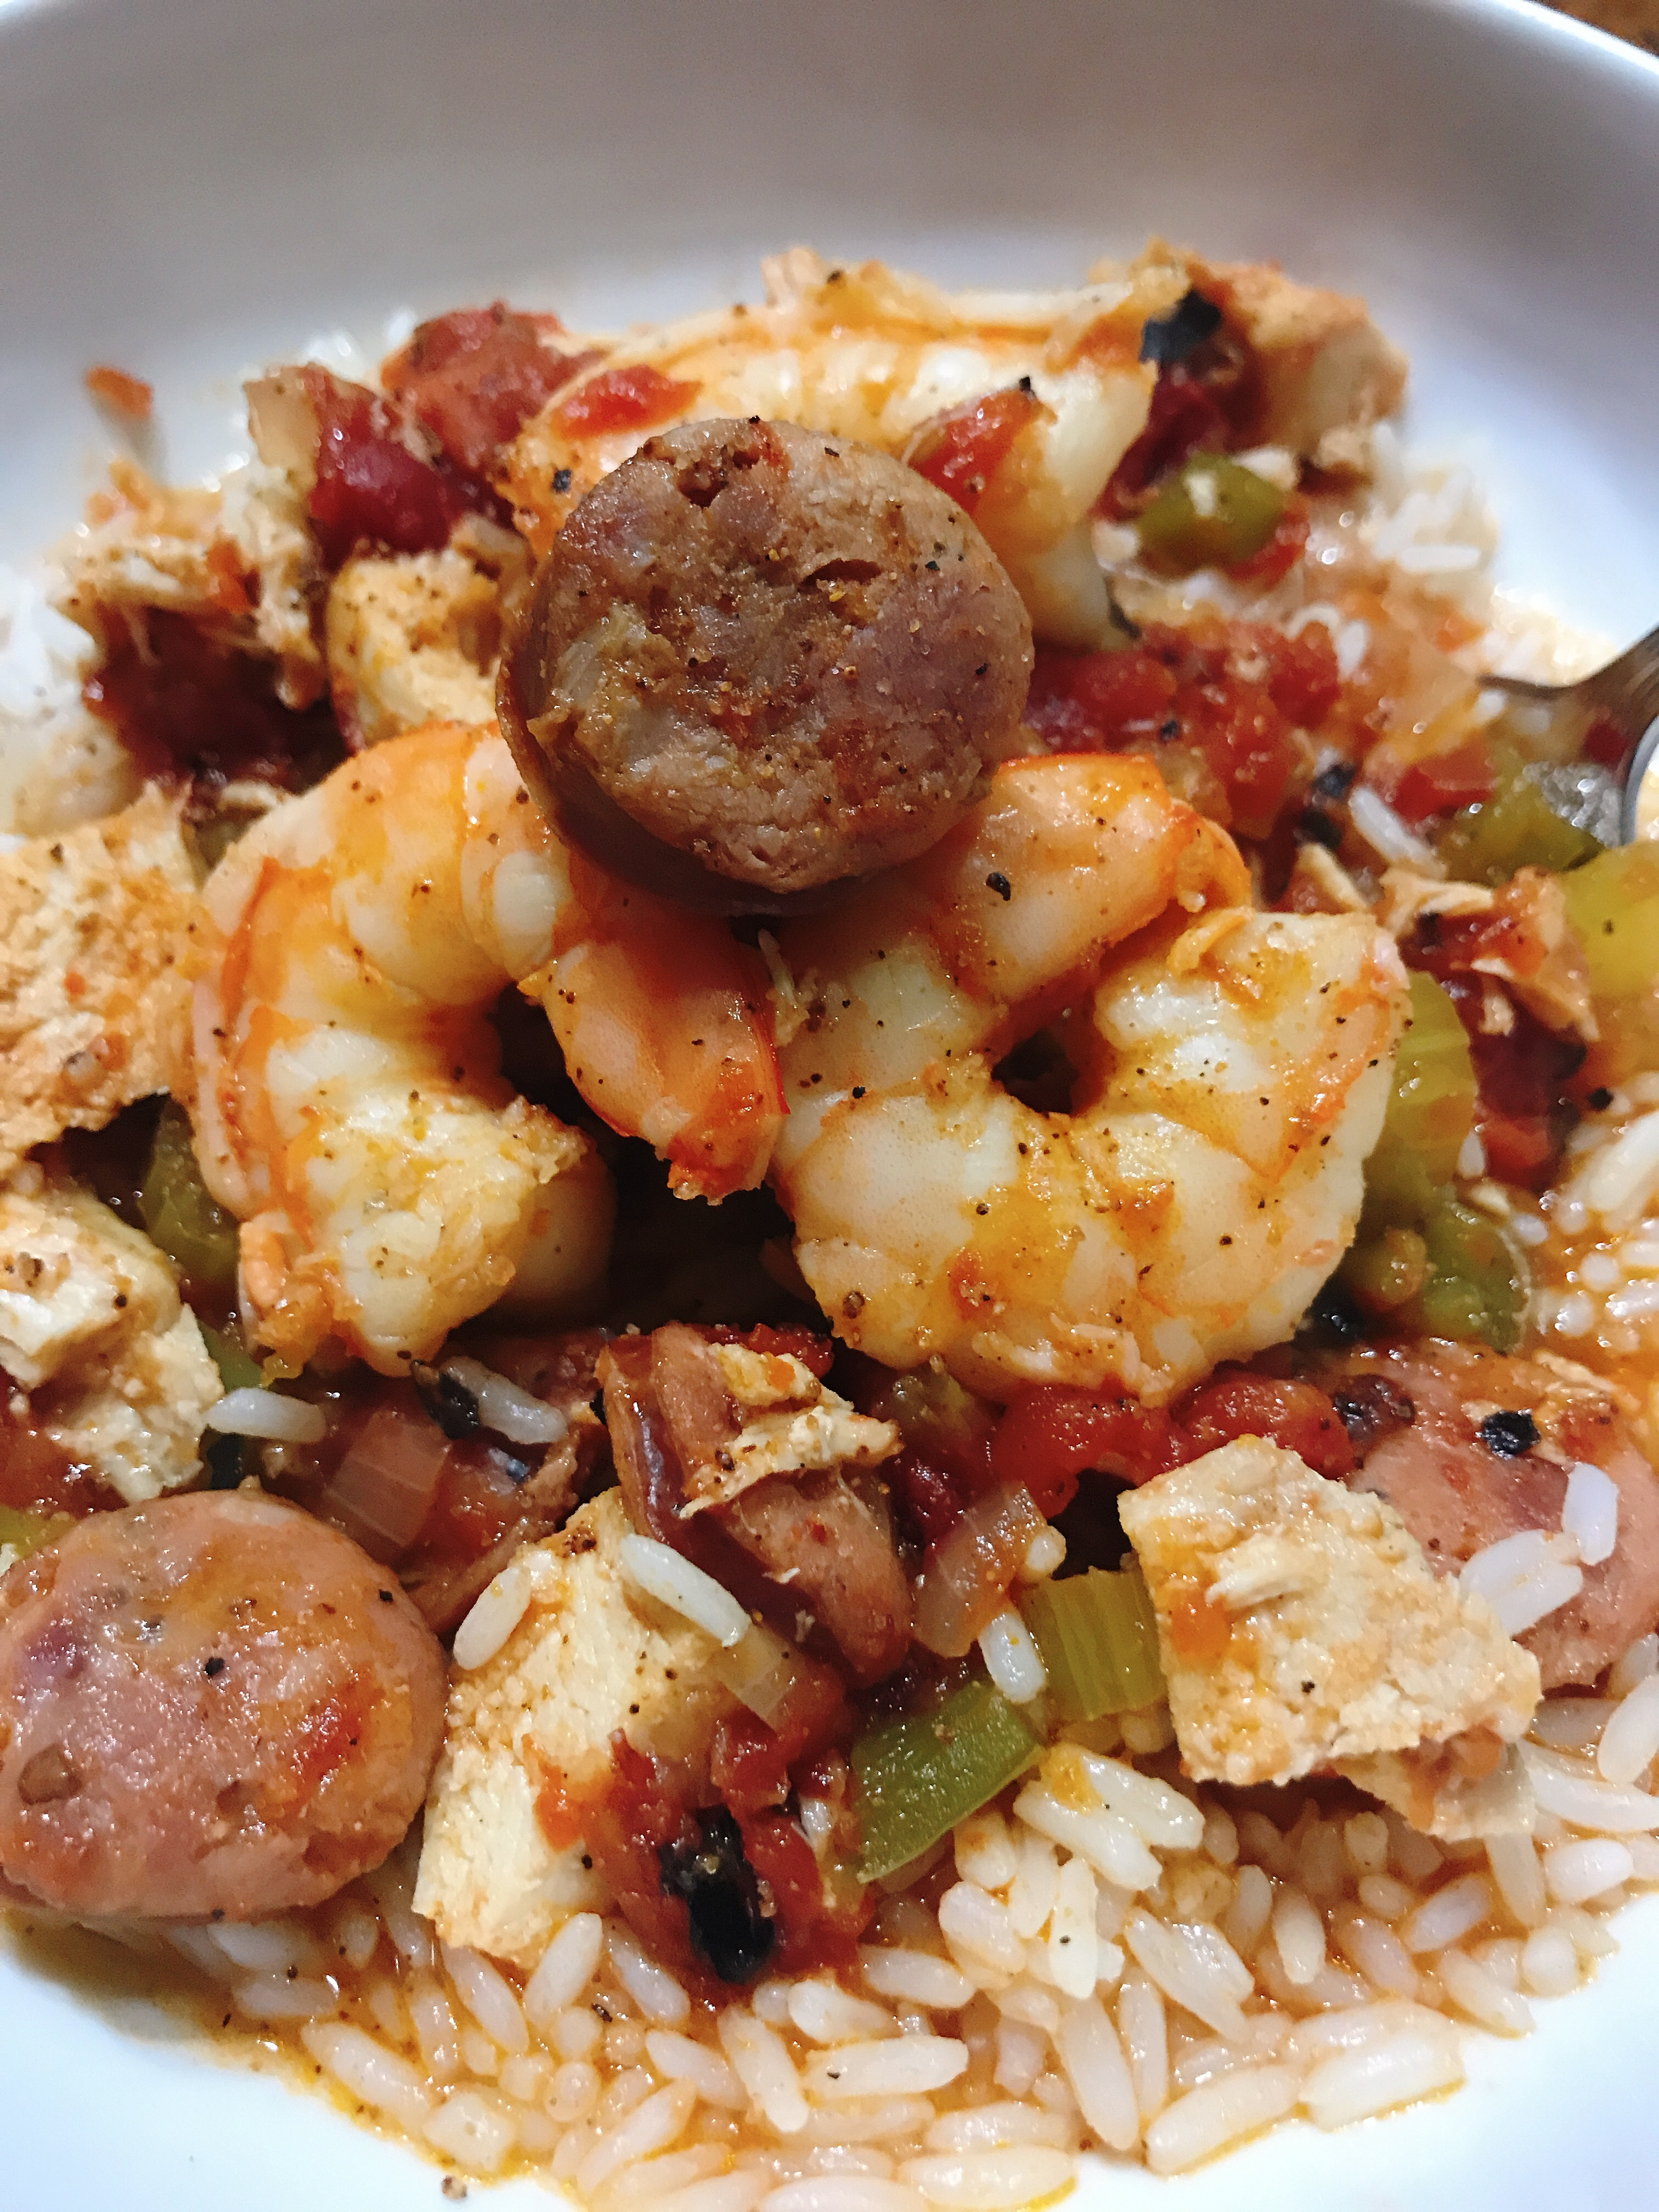 """Chicken, andouille sausage, shrimp, and the """"holy trinity"""" of onion, bell peppers, and celery get together in a classic Mardi Gras recipe that's ready in about an hour — and that includes the time it takes to cook the riceandthe jambalaya. Cajun and Creole seasonings amp up the heat and the flavor."""